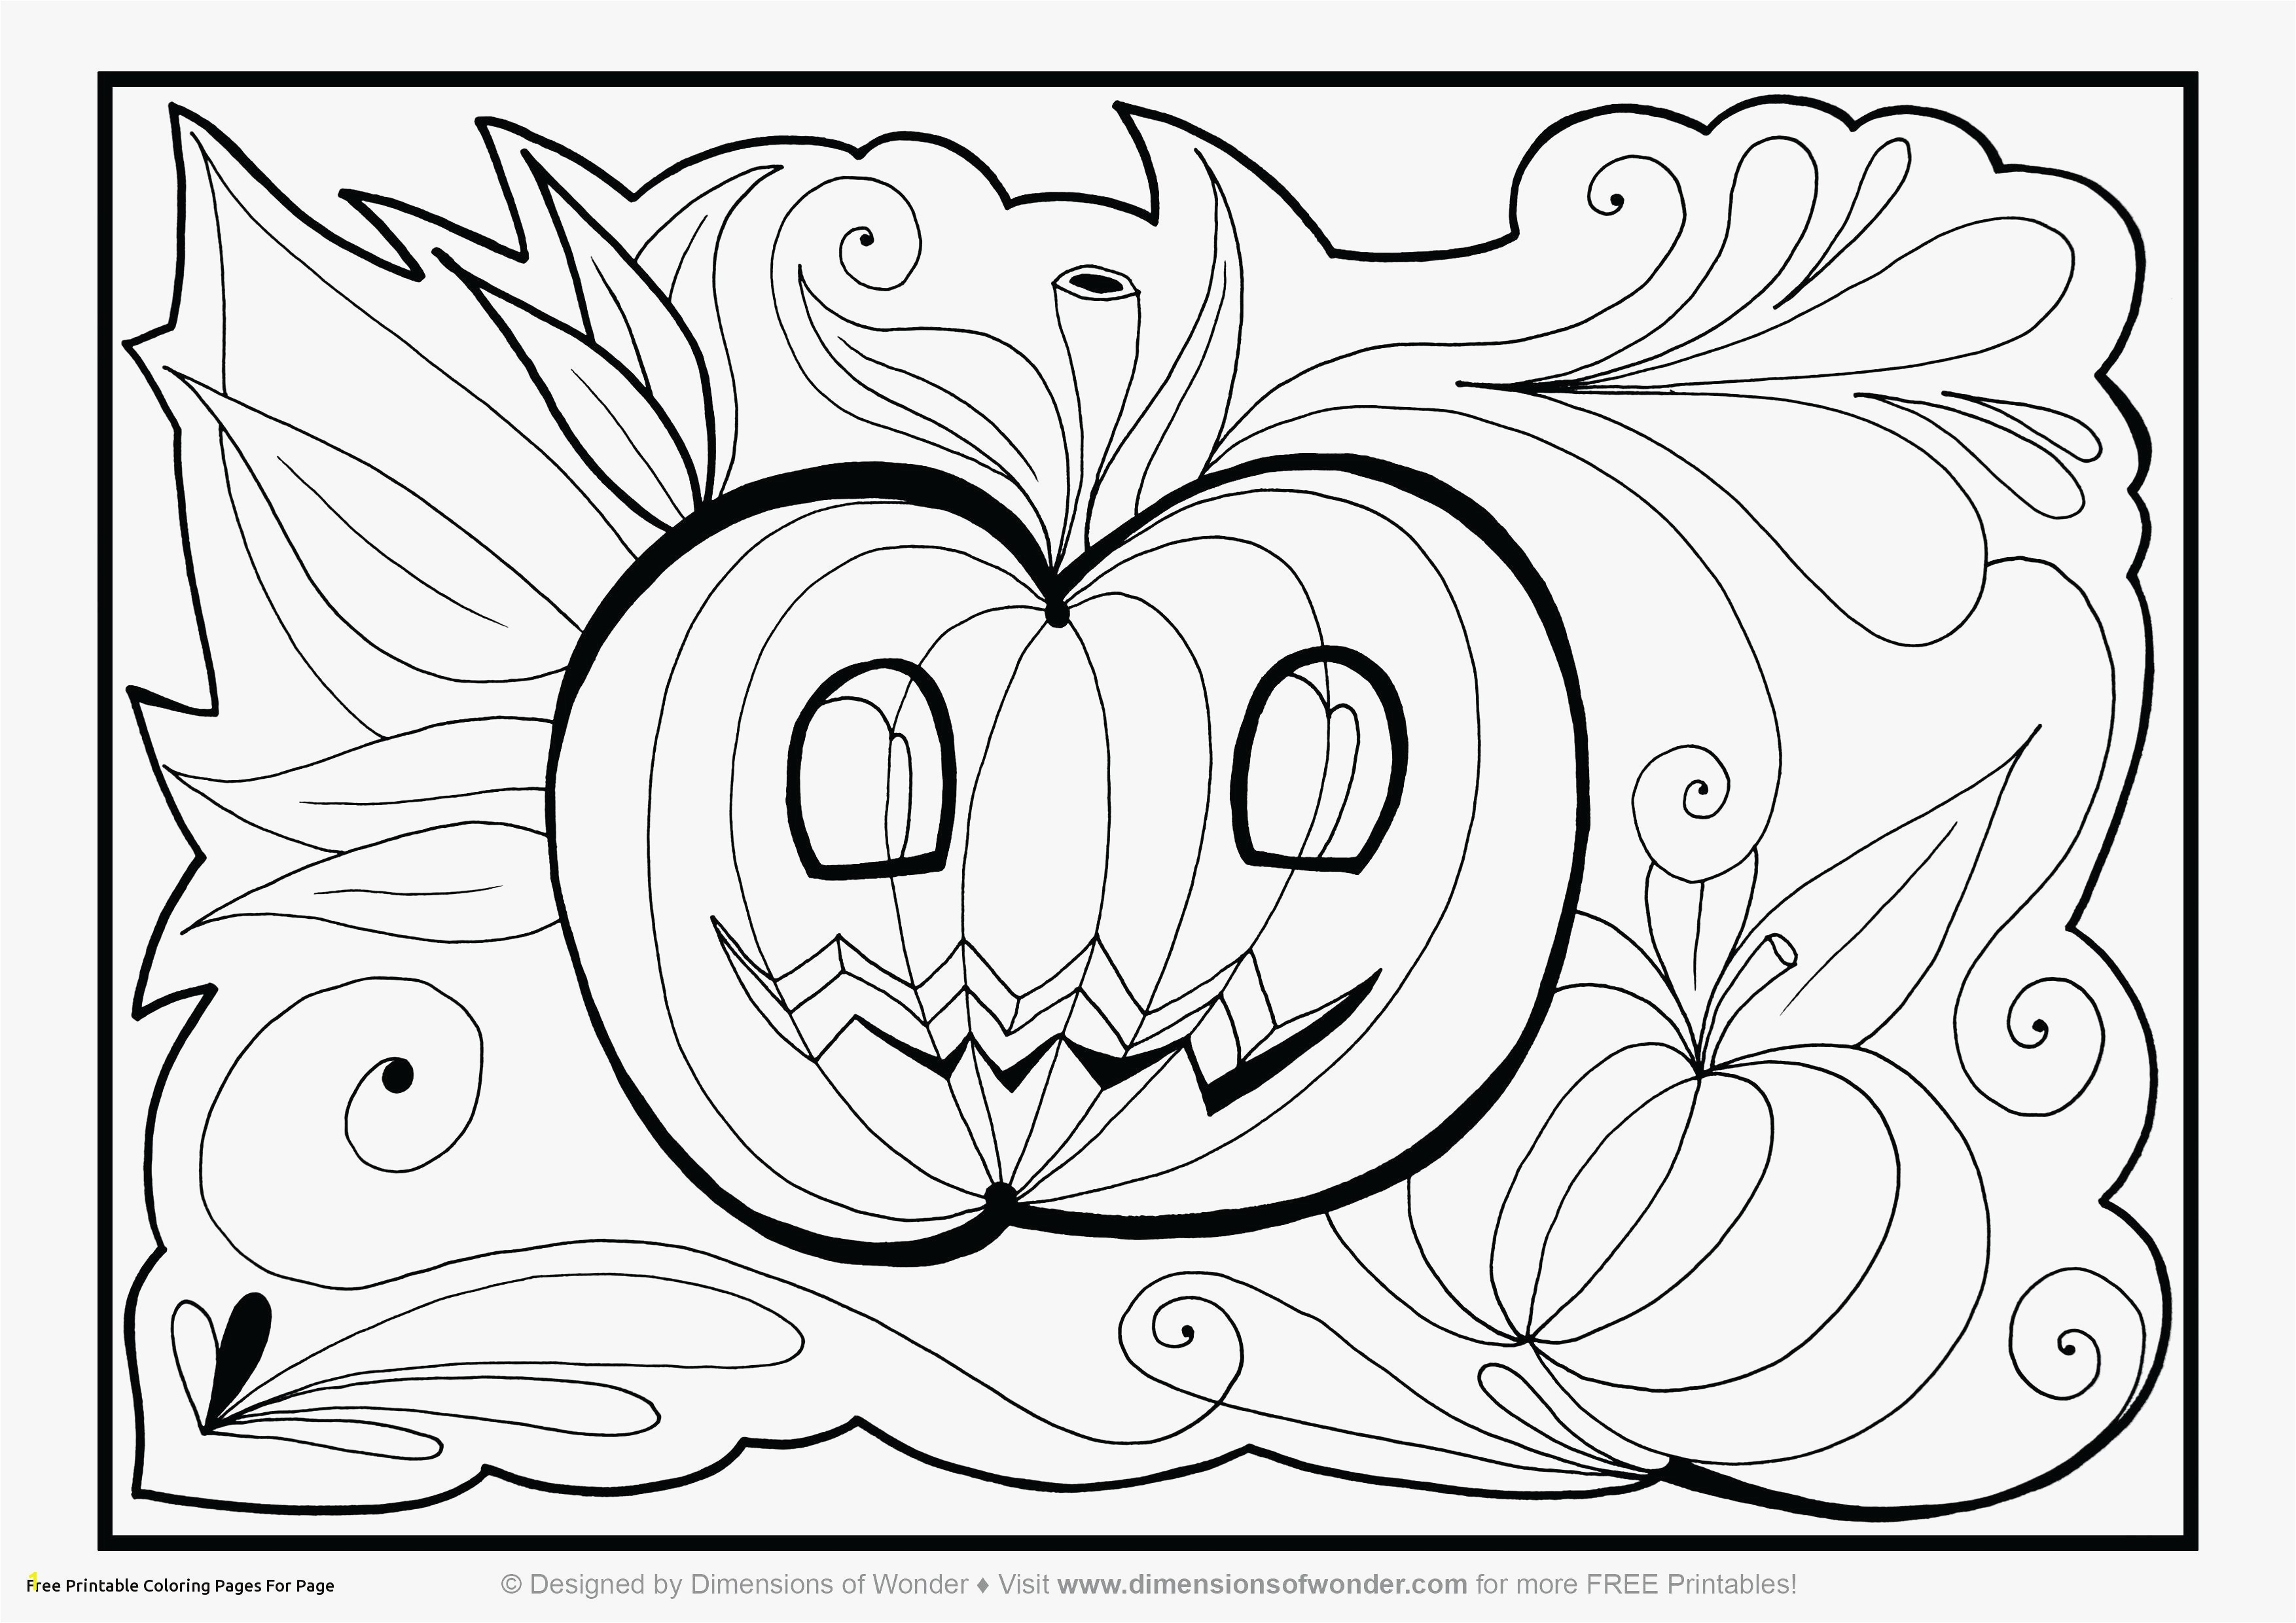 Boy Halloween Coloring Pages 12 Inspirational Boy Halloween Coloring Pages